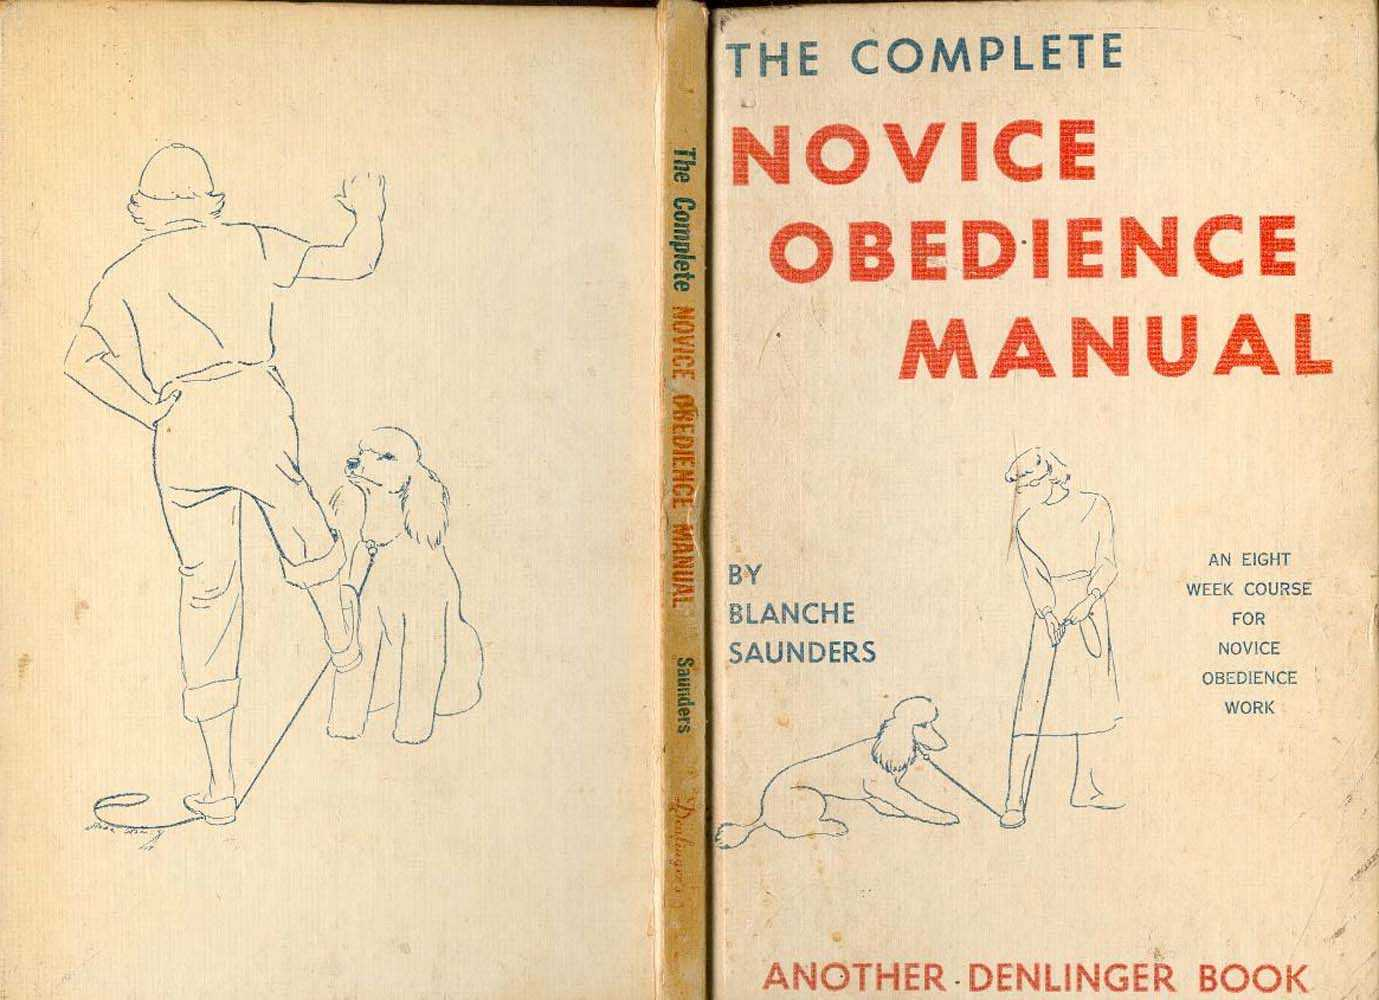 Complete Novice Obedience Manual, Saunders Blanche